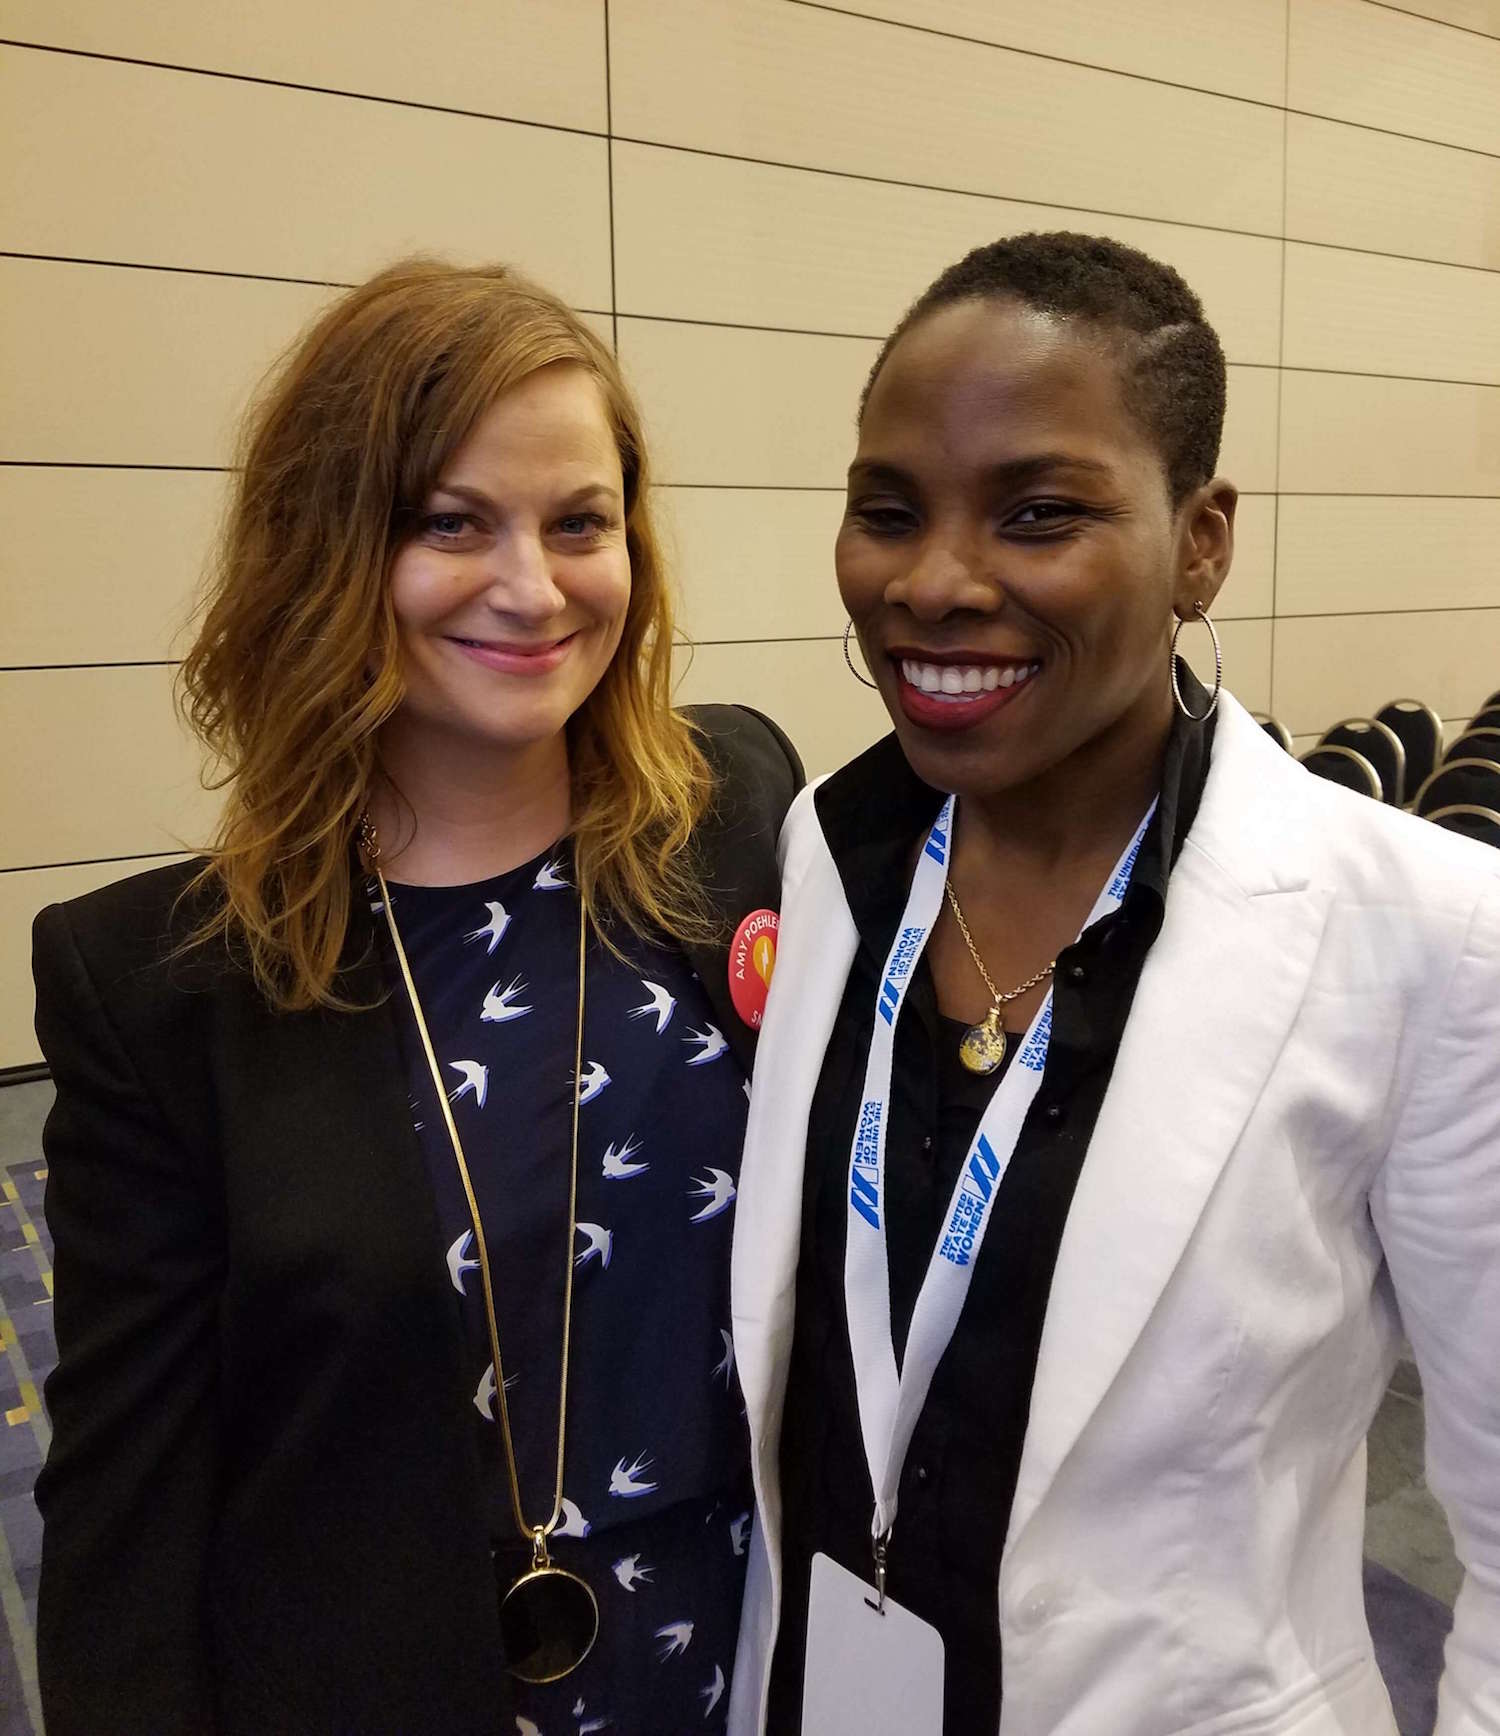 Luvvie Ajayi and Amy Poehler